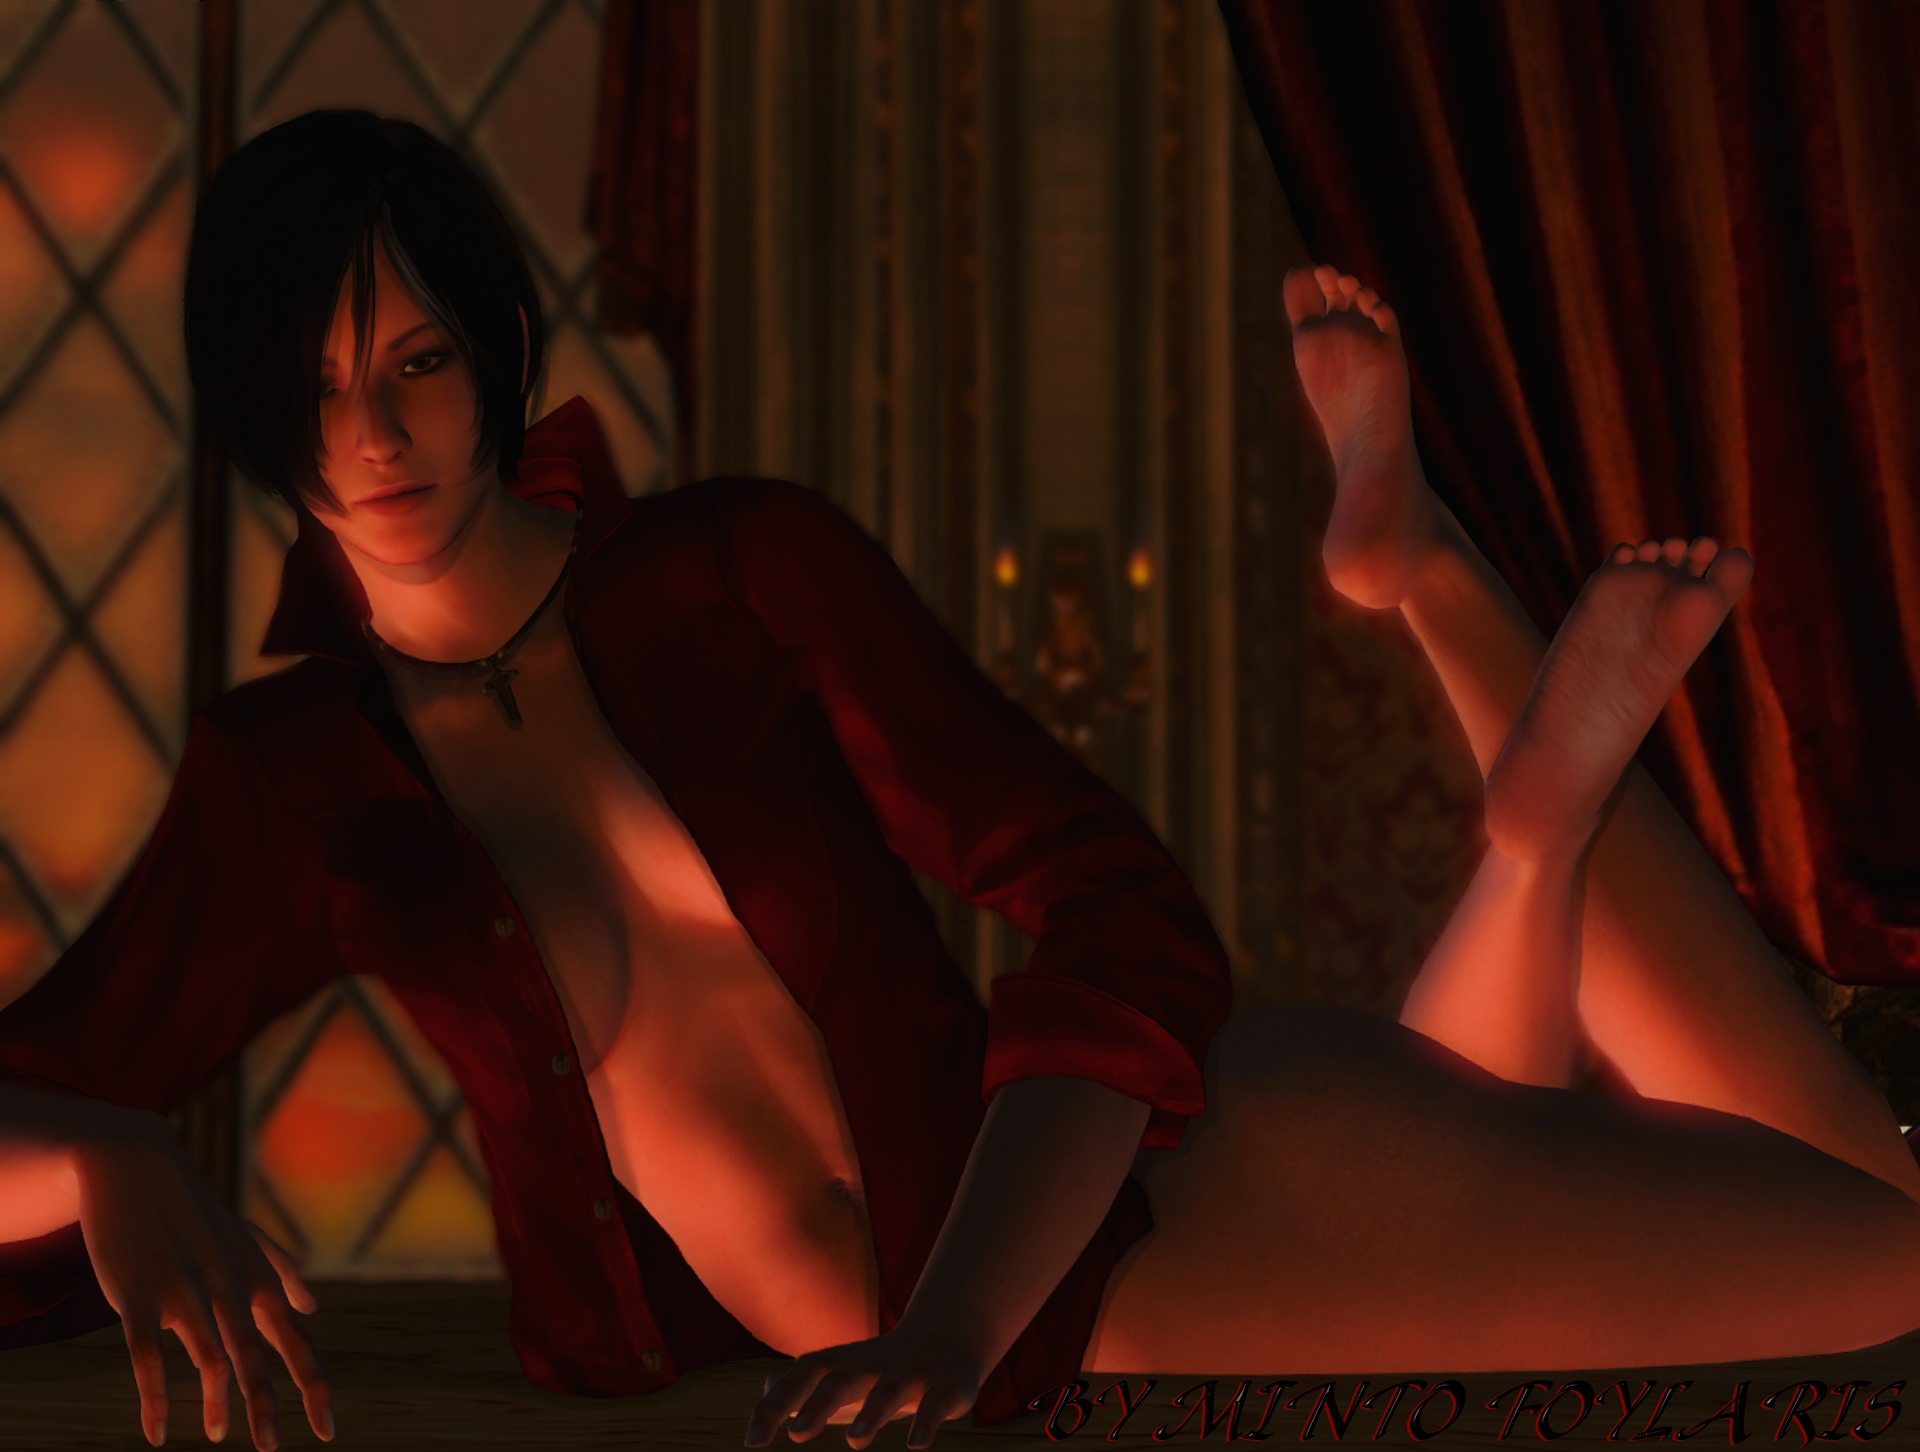 Nude resident evil fan art erotic scenes